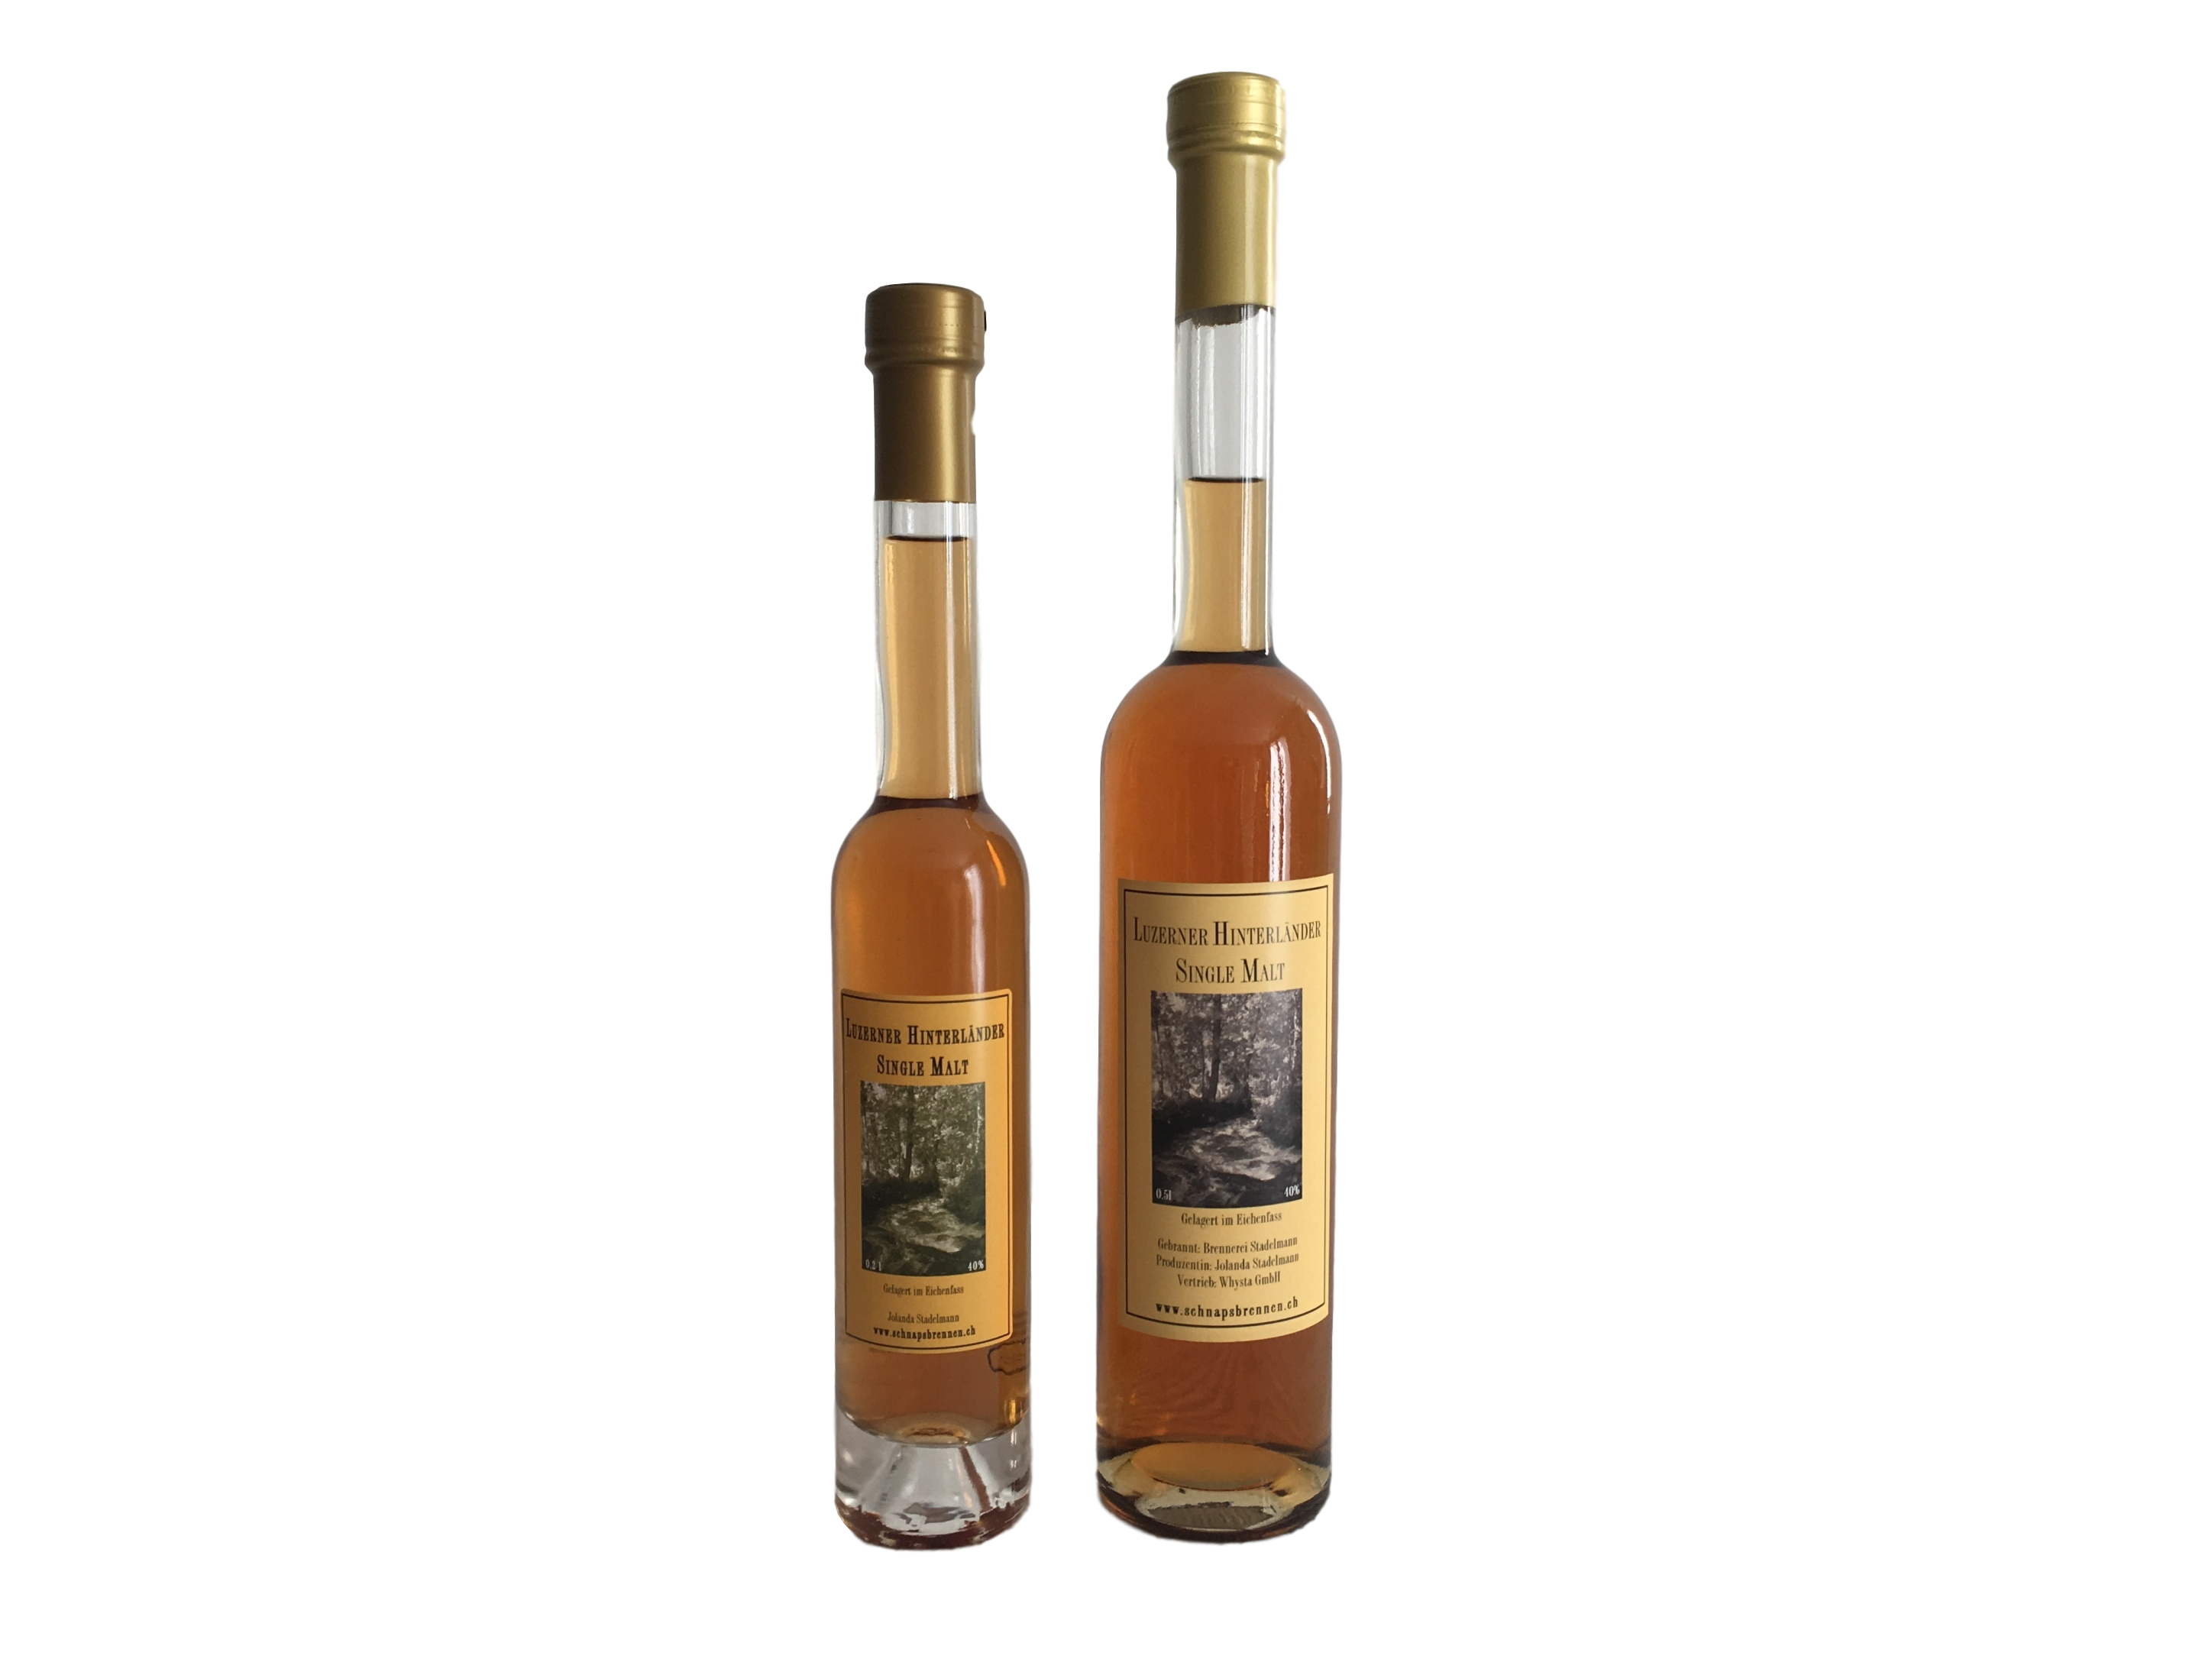 Luzerner Hinterländer Single Malt